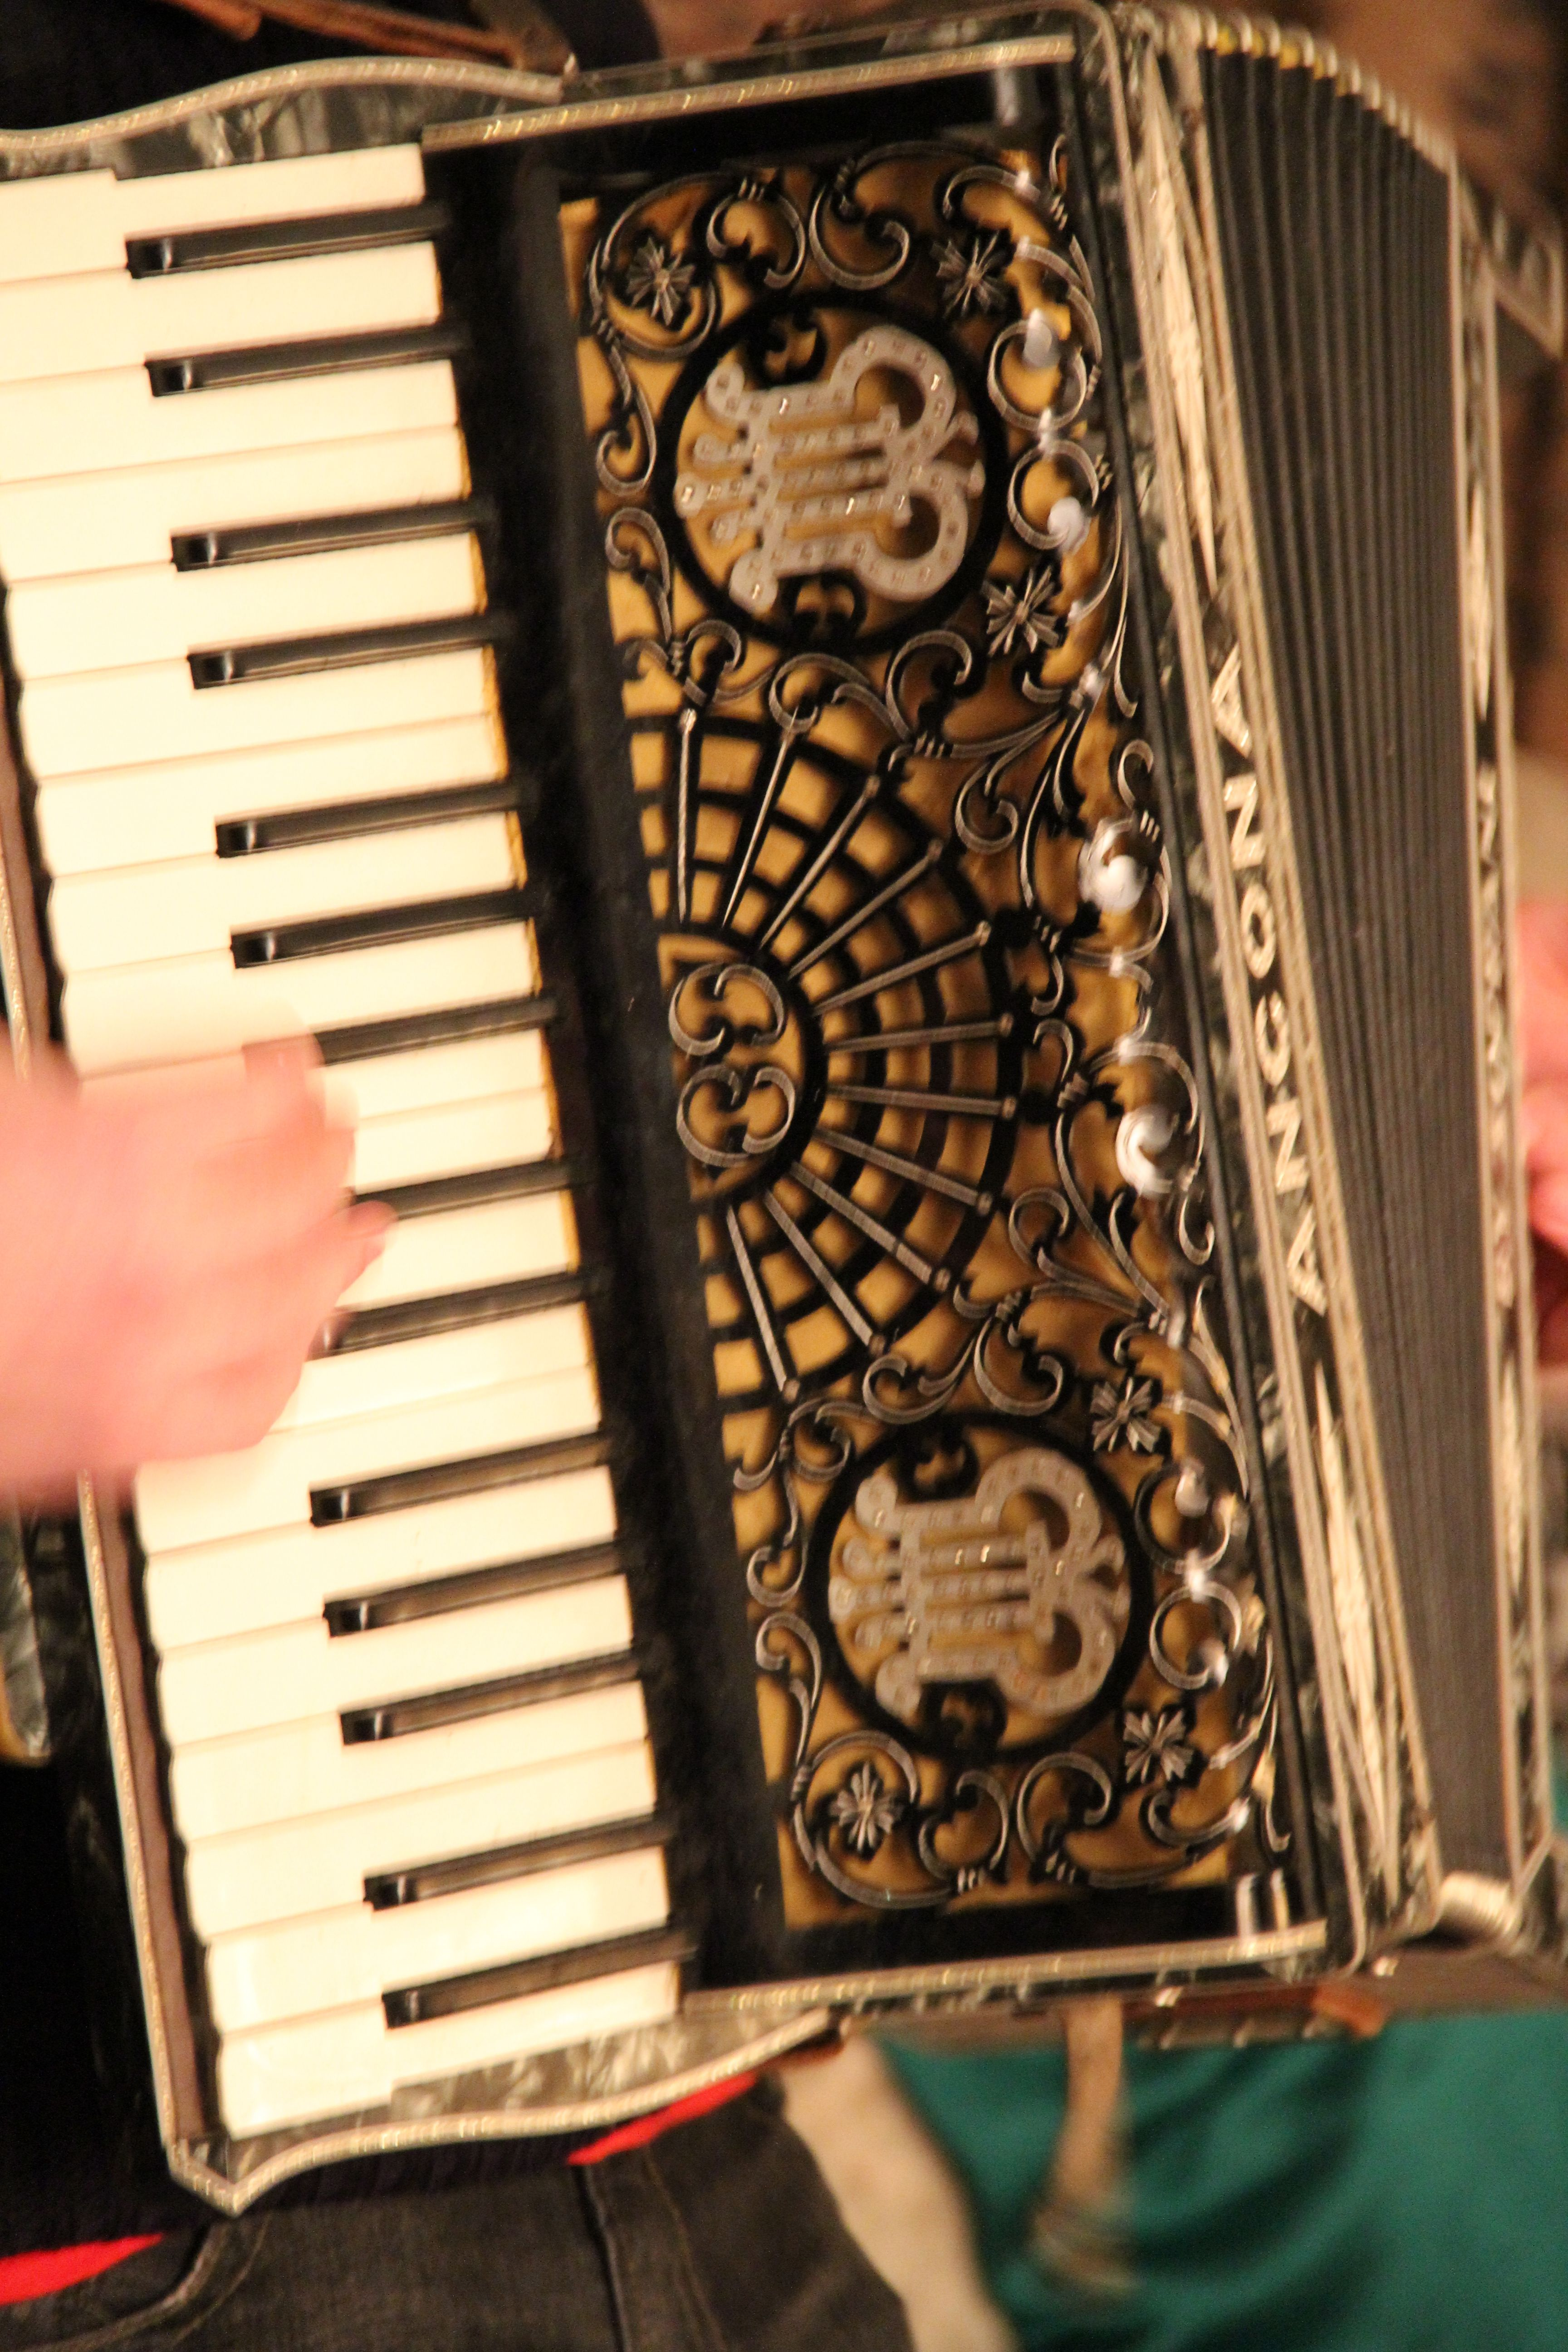 Squeeze Box | Accordians! in 2019 | Piano accordion, Music, Musical